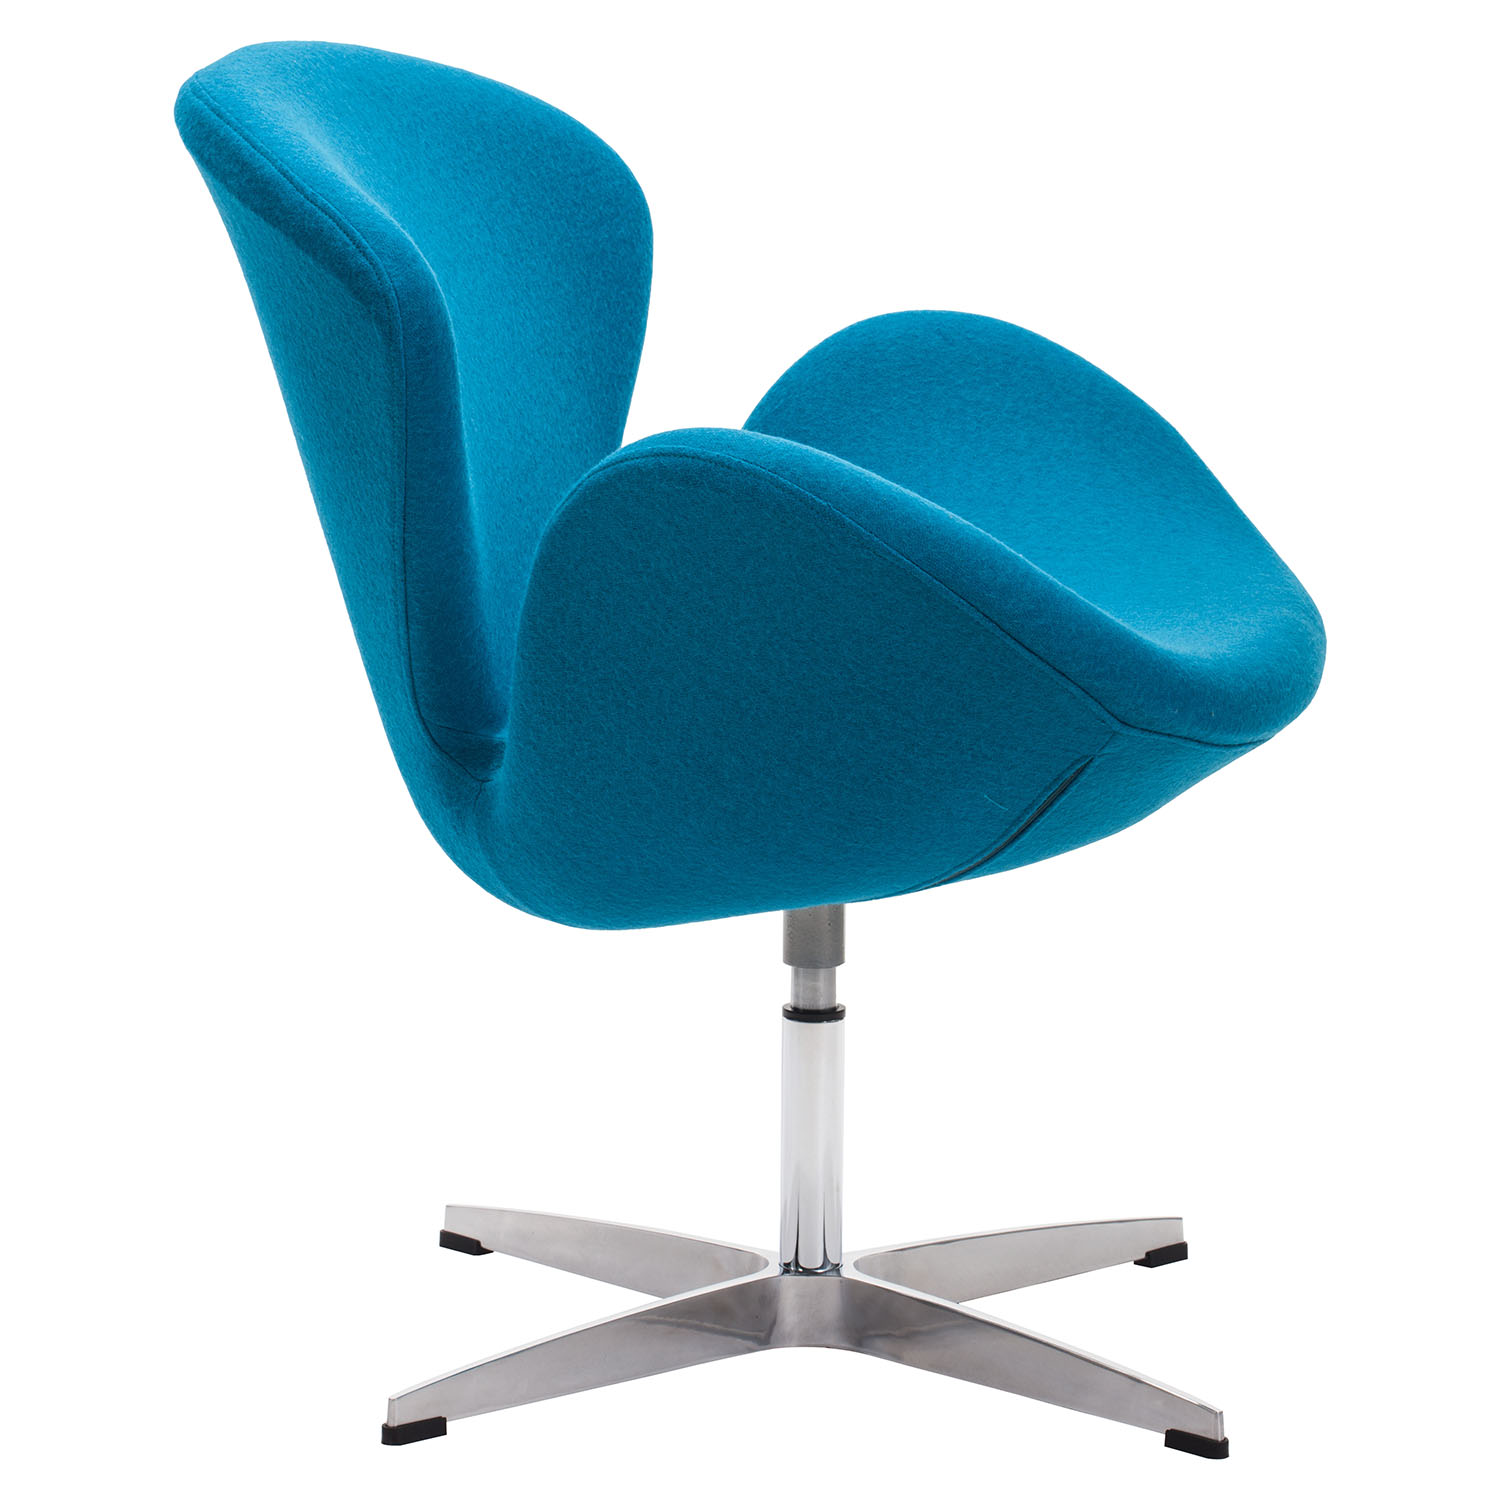 Pori Arm Chair - Island Blue - ZM-500311